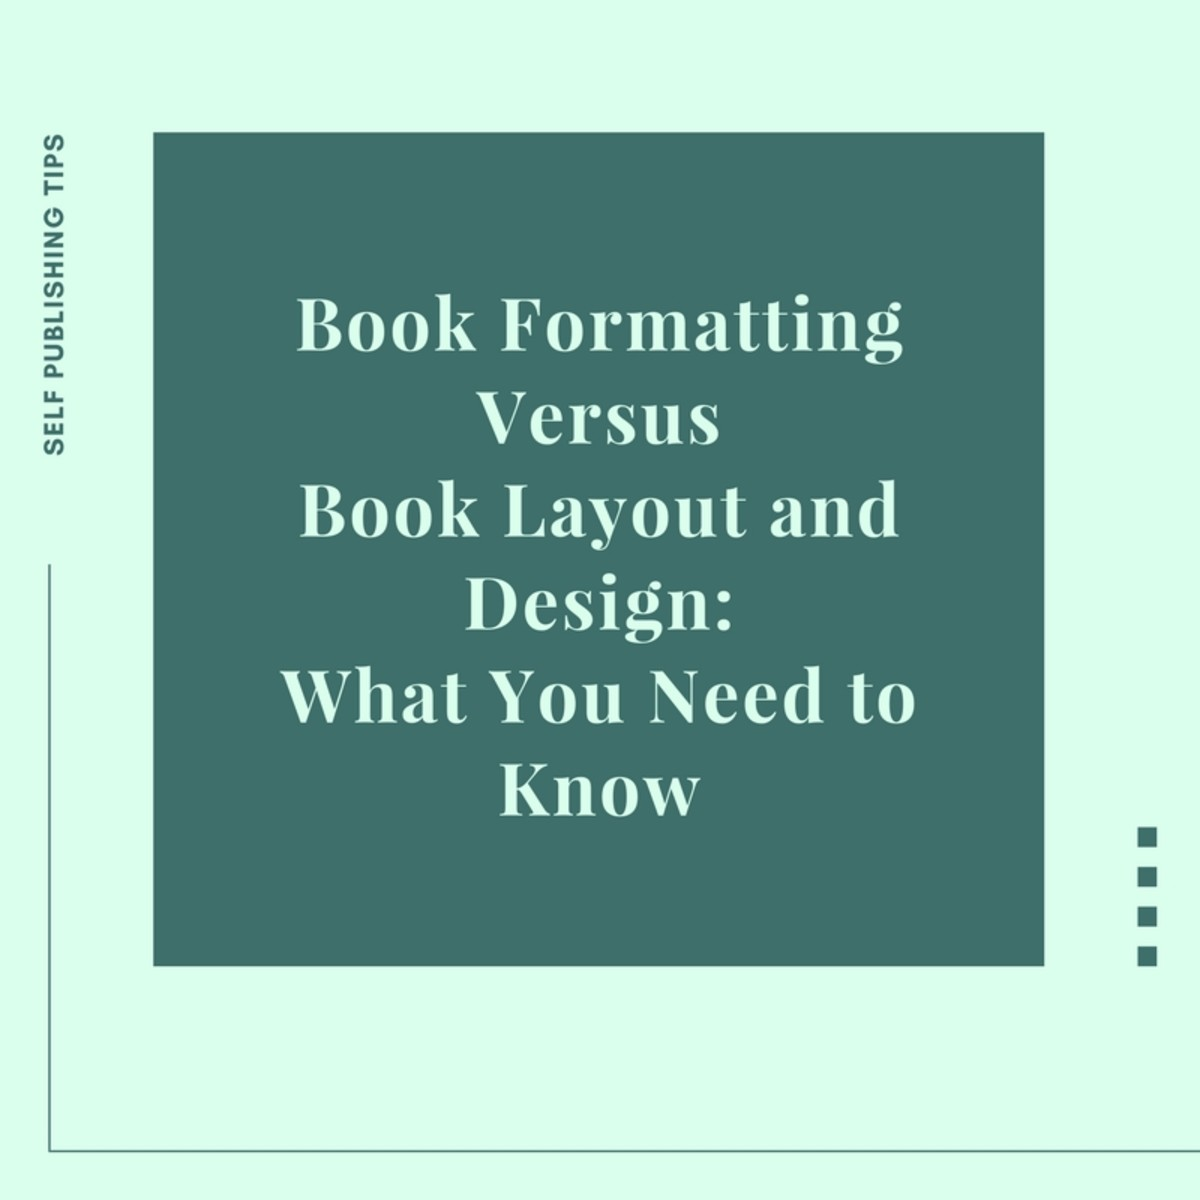 Book Formatting Versus Book Layout and Design: What You Need to Know